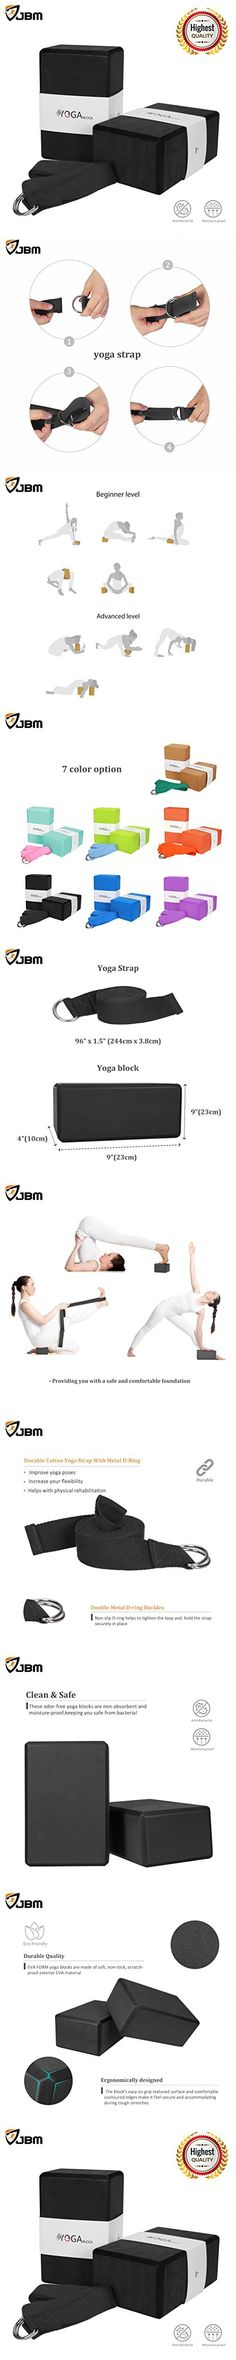 JBM Yoga Block plus strap with Metal D-Ring Yoga Brick Cork Yoga Block 6 colors 2 pack - High Density EVA Foam Yoga Block to Support and Deepen Poses, Lightweight, Odor-Resistant and Moisture-Proof